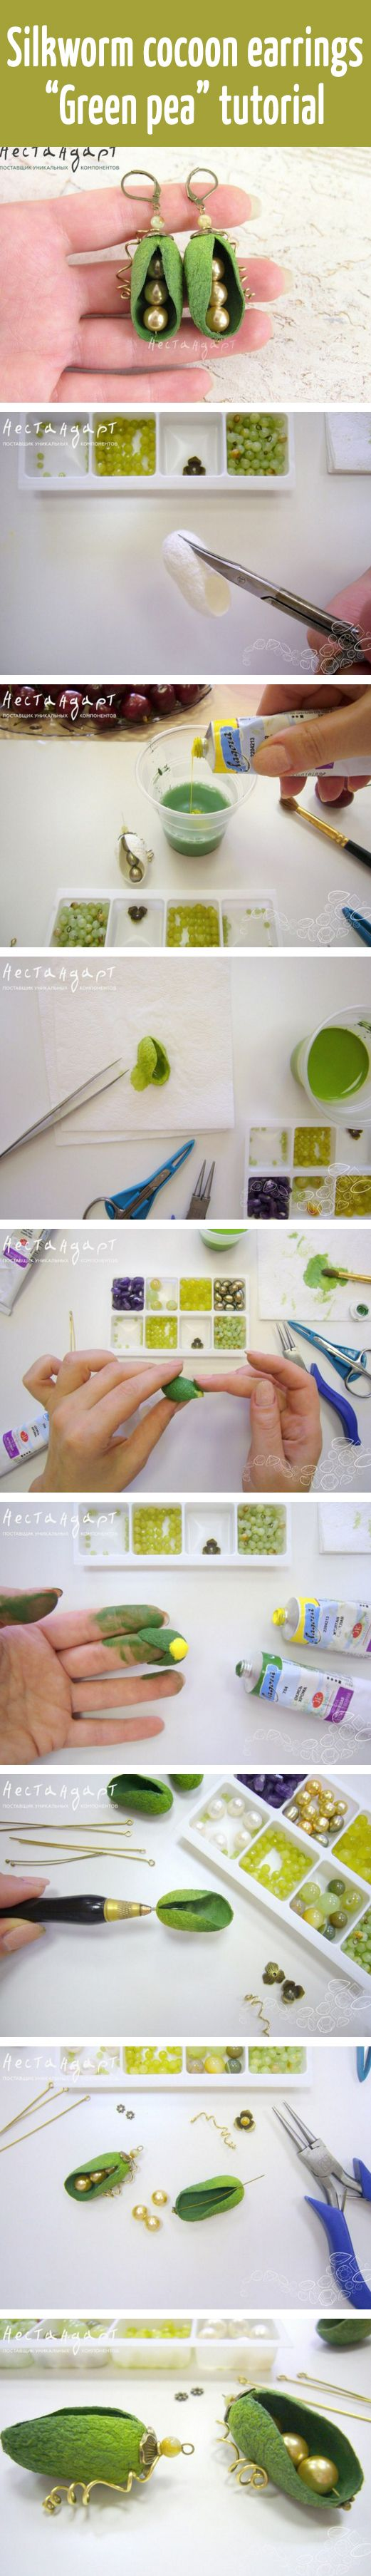 "Silkworm cocoon earrings ""Green pea"" tutorial"